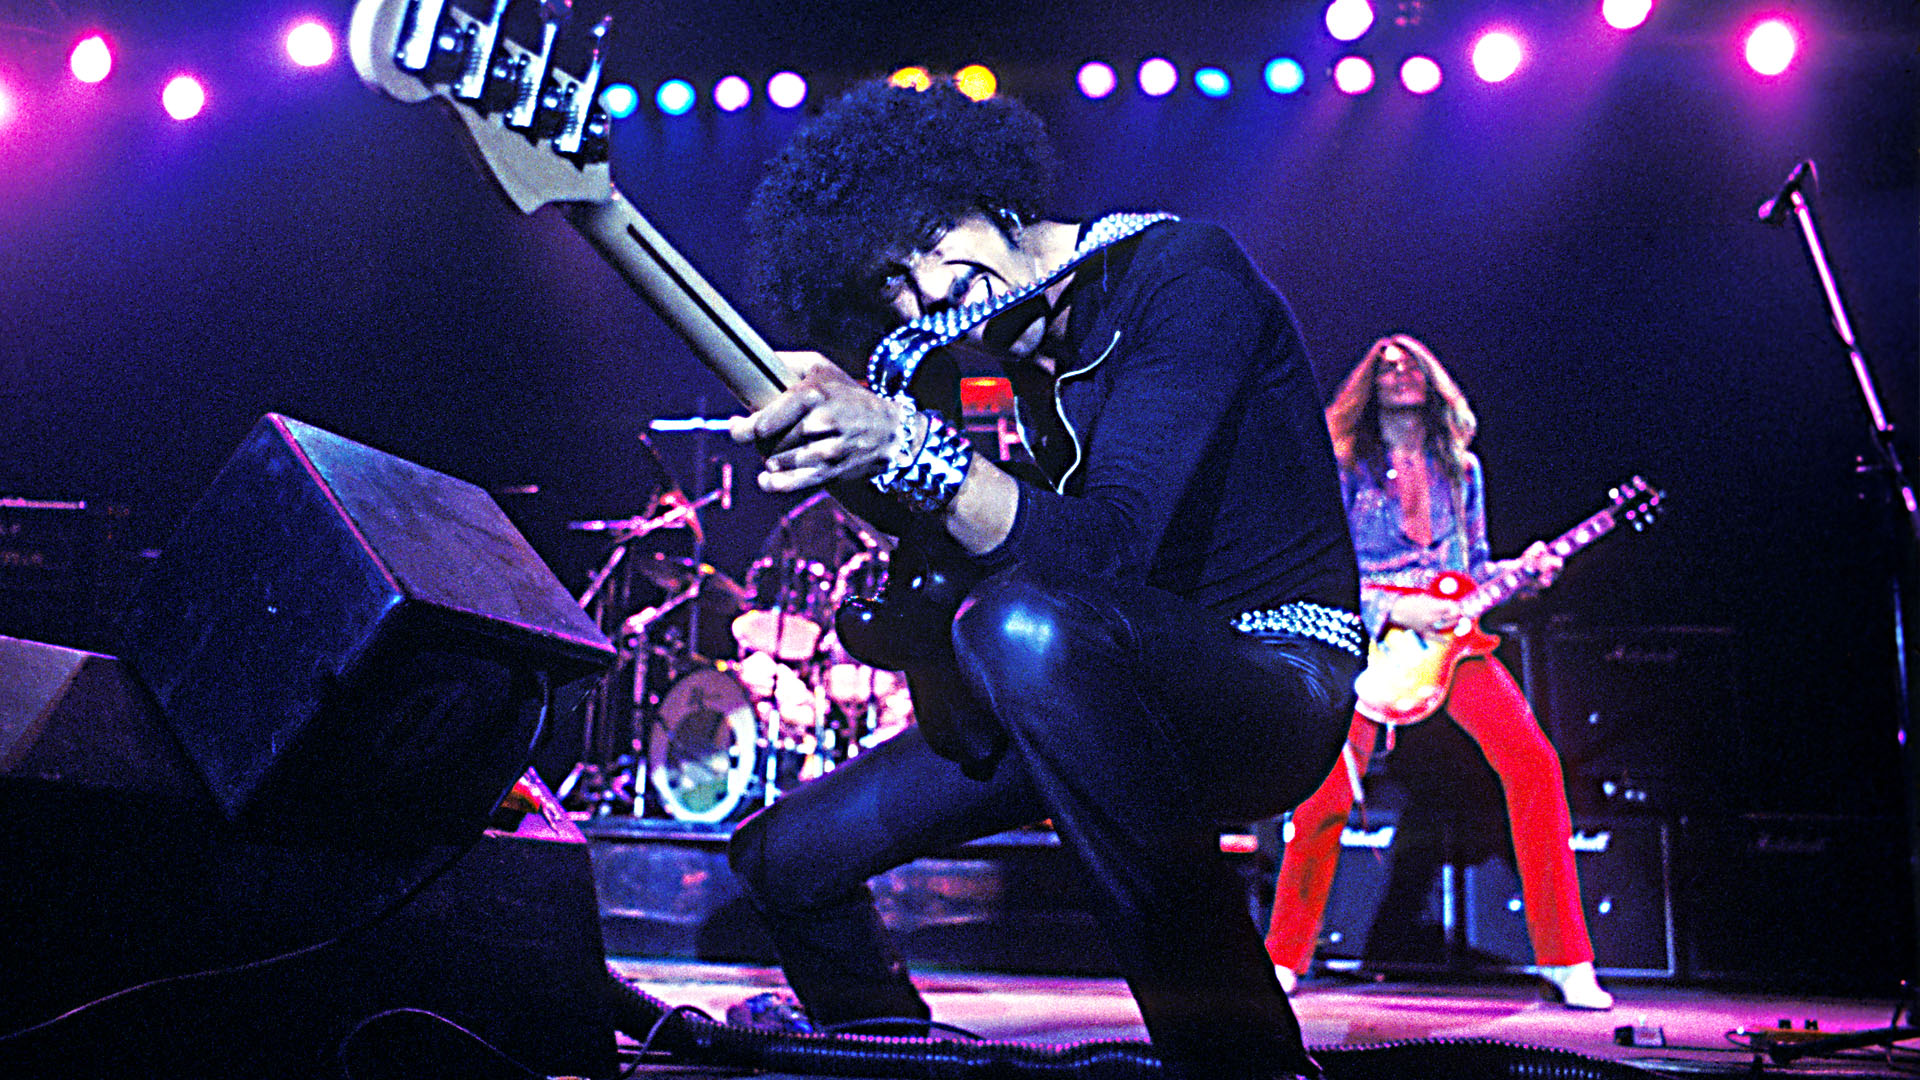 Thin Lizzy performing live